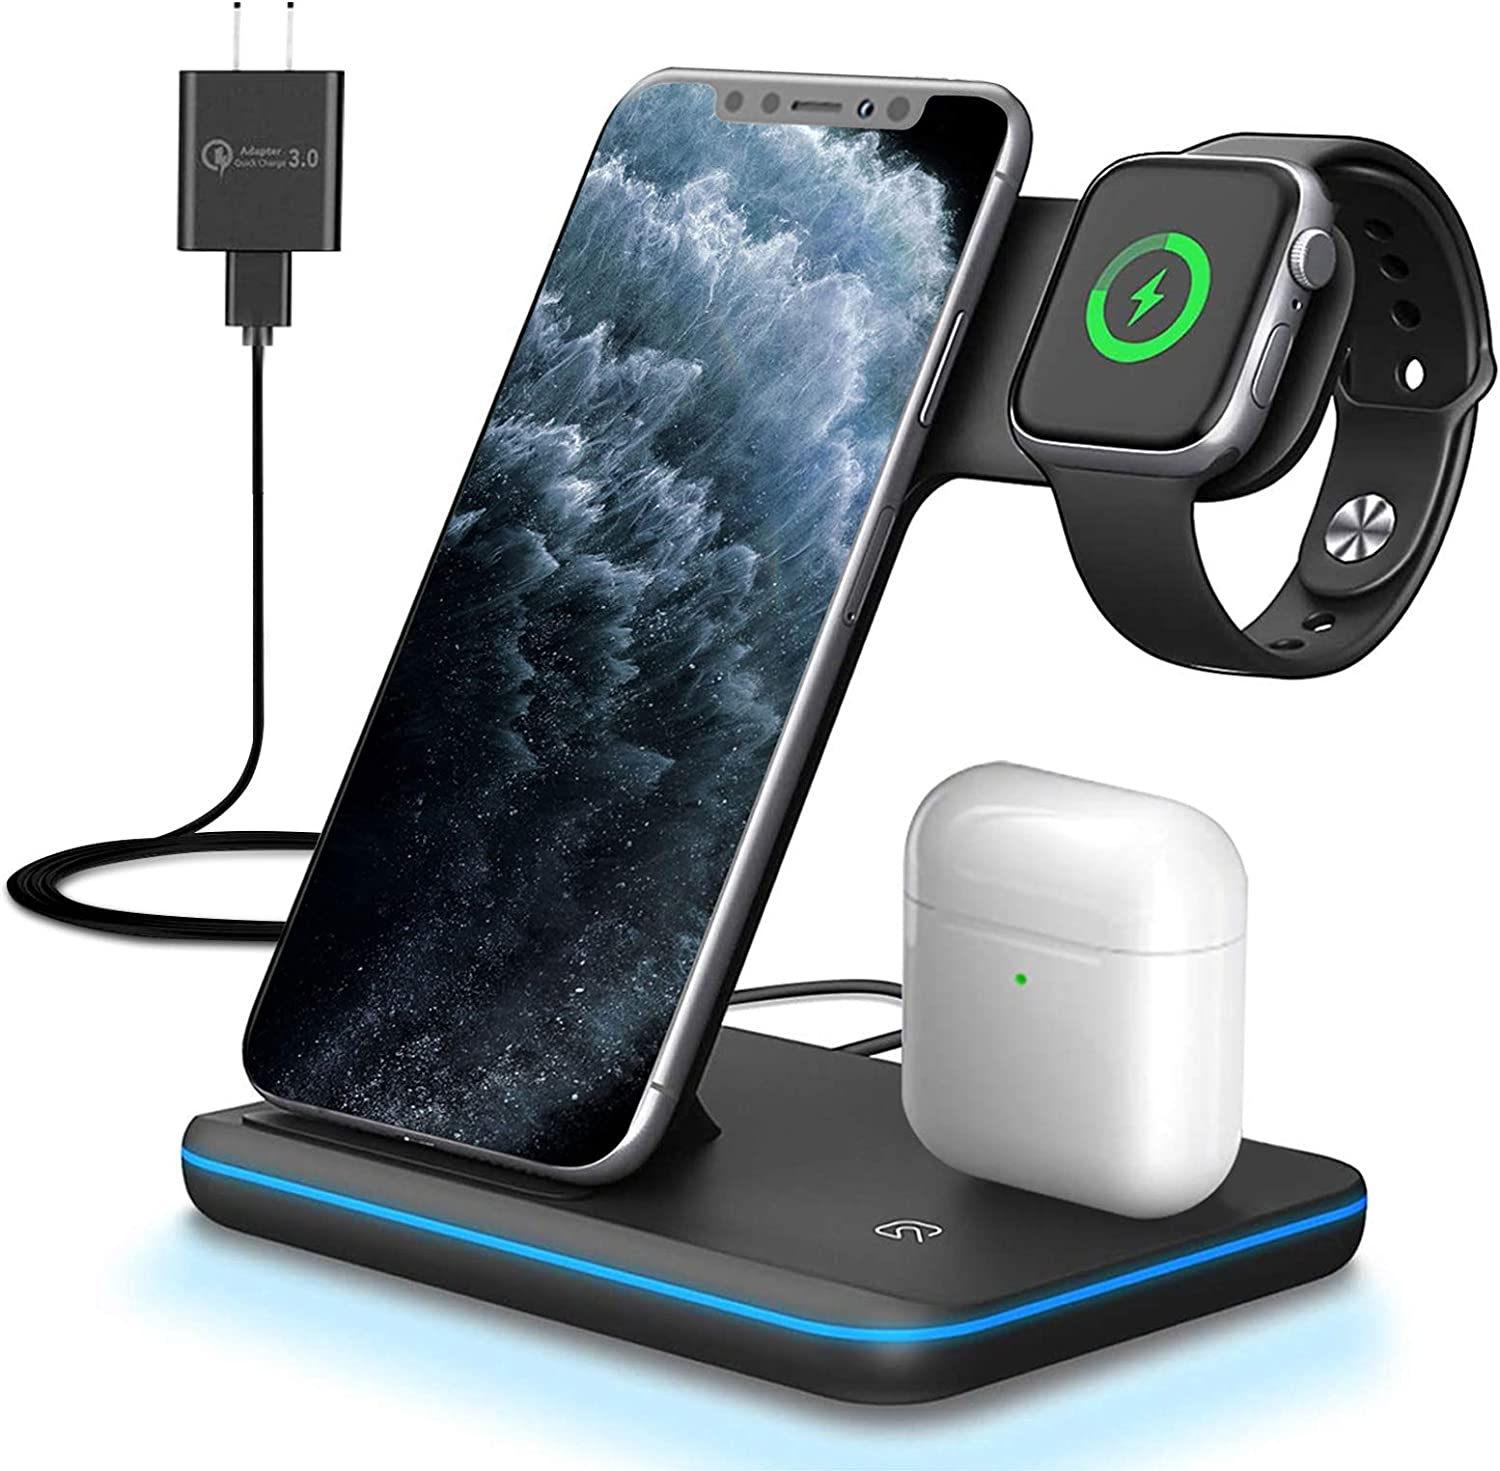 ZHIKE Wireless Charger, 3 in 1 Qi-Certified 15W Fast Charging Station for Apple iWatch Series 6/5/4/3/2/1, AirPods, Compatible with iPhone SE/11/11Pro/11Pro Max/XS MAX/XR/XS/X/8 Plus, Samsung S20/S10